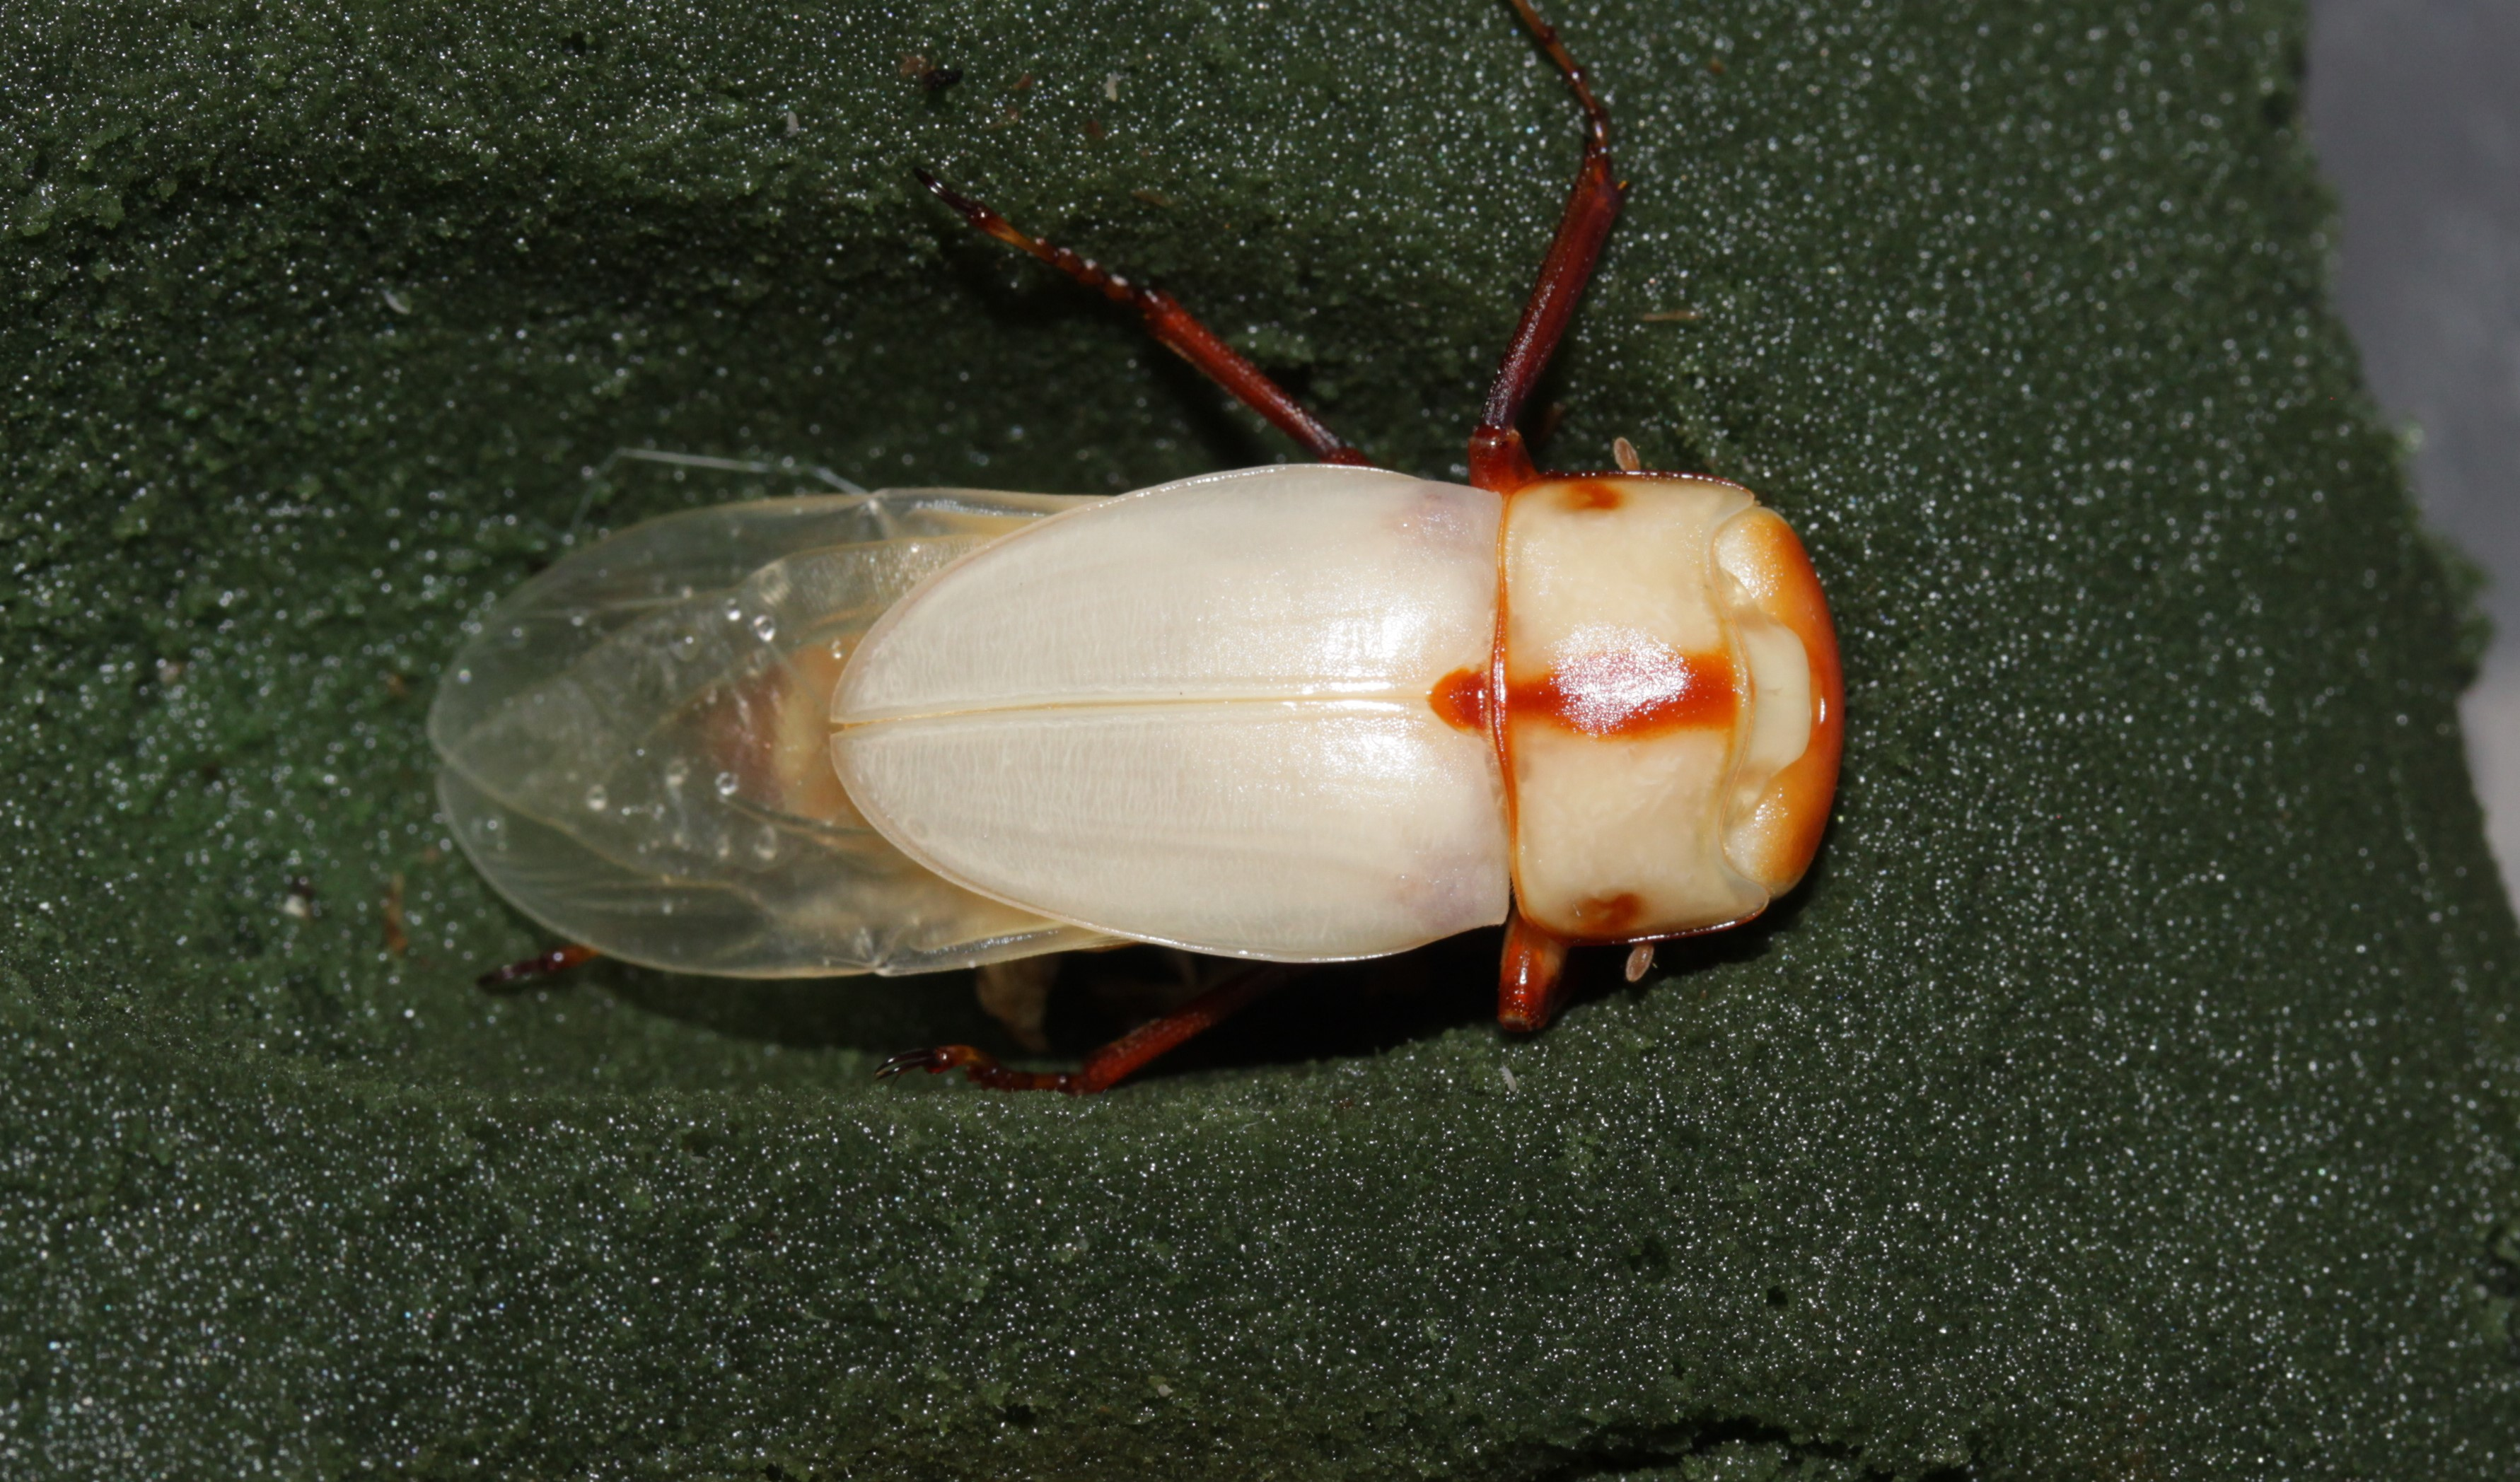 Prosopocoilus suturalis minor male in artificial cocoon from Thailand